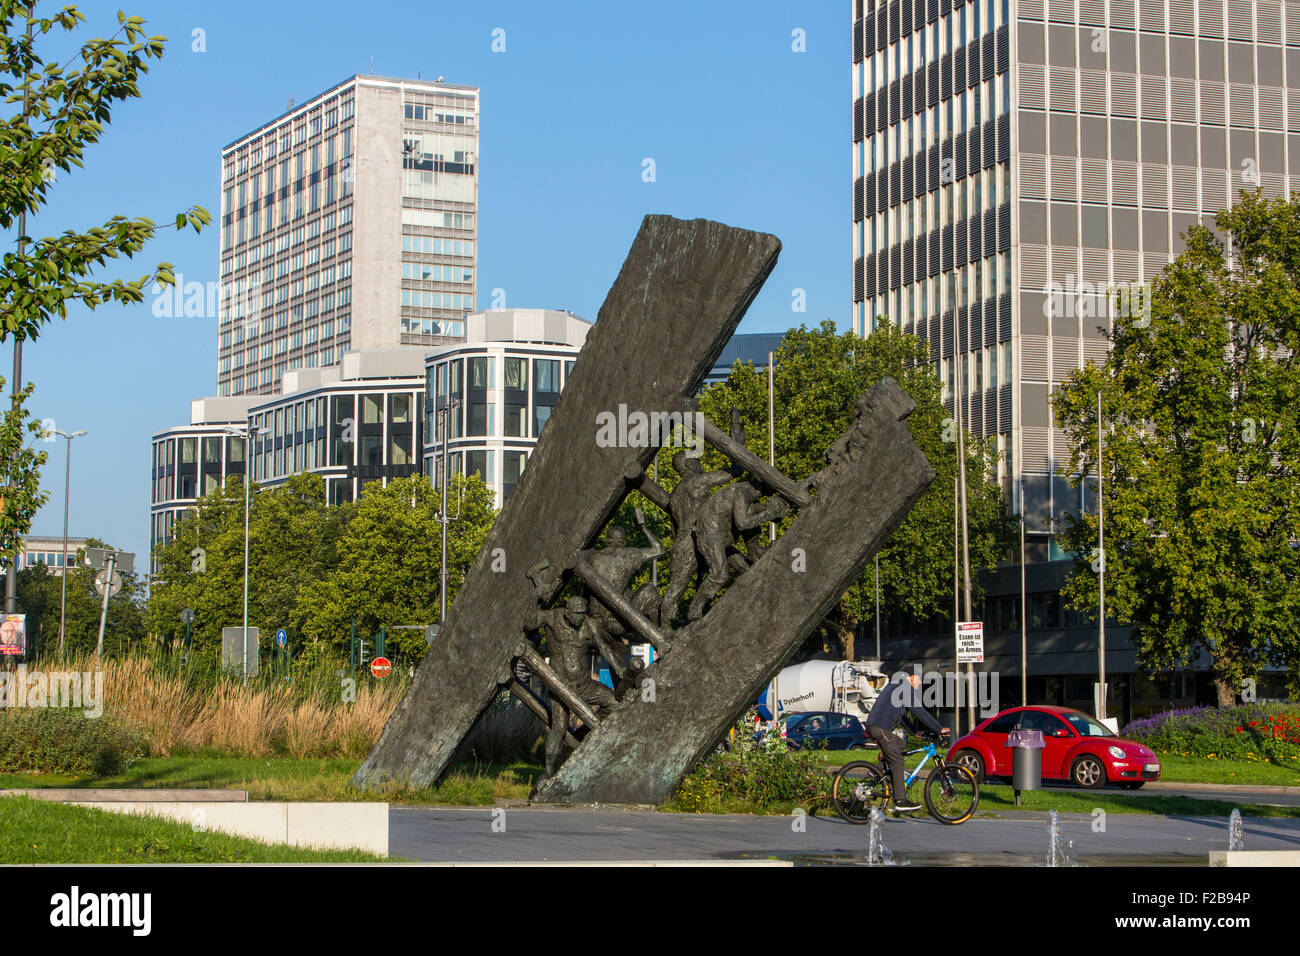 """Monument """"Steile Lagerung"""", reminds the coal mining history in the city of Essen, in the Ruhr area, Stock Photo"""